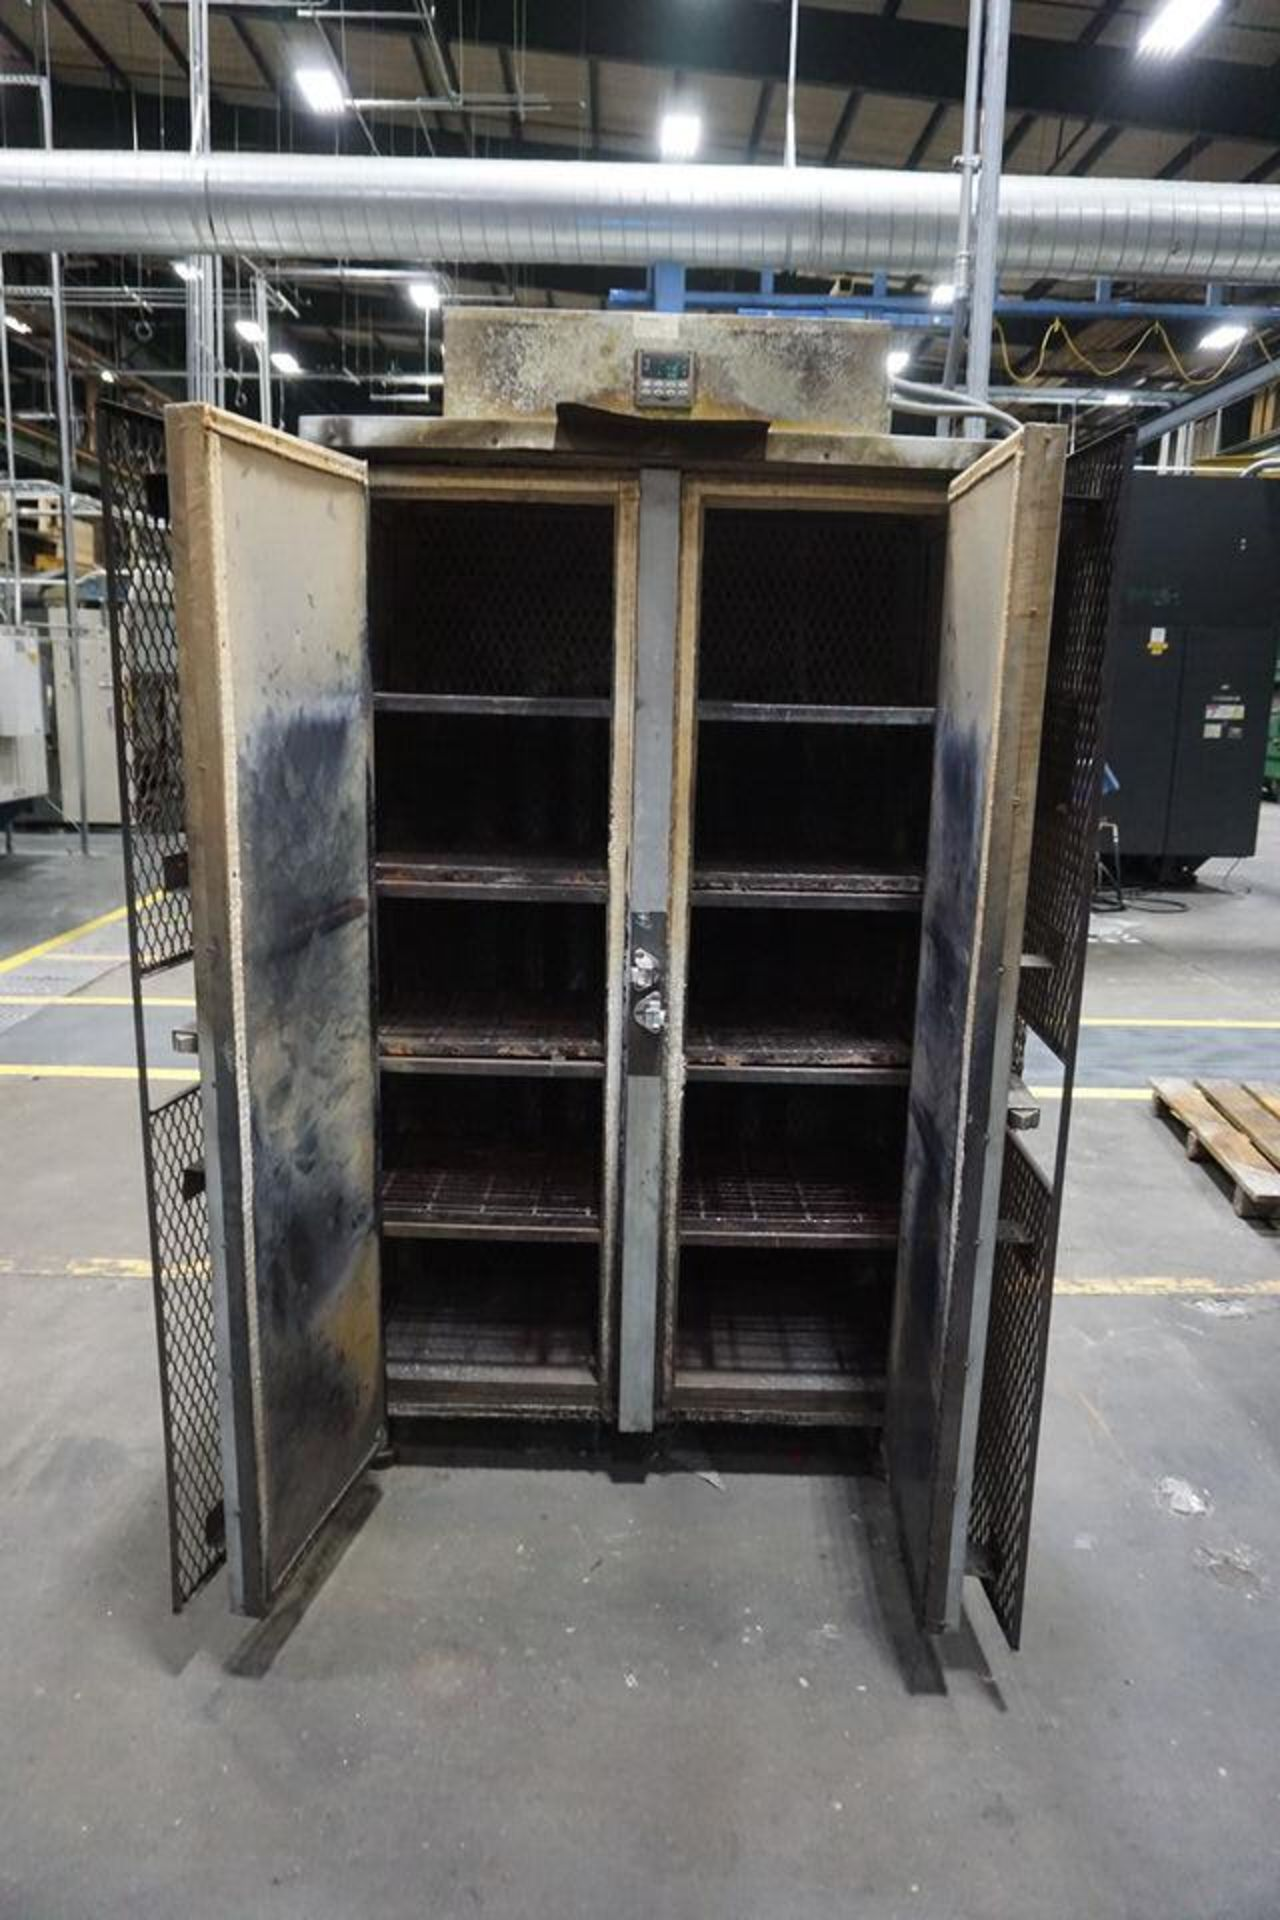 DOUBLE DOOR ELECTRIC BOX OVEN (ASST#: P38501) - Image 4 of 4